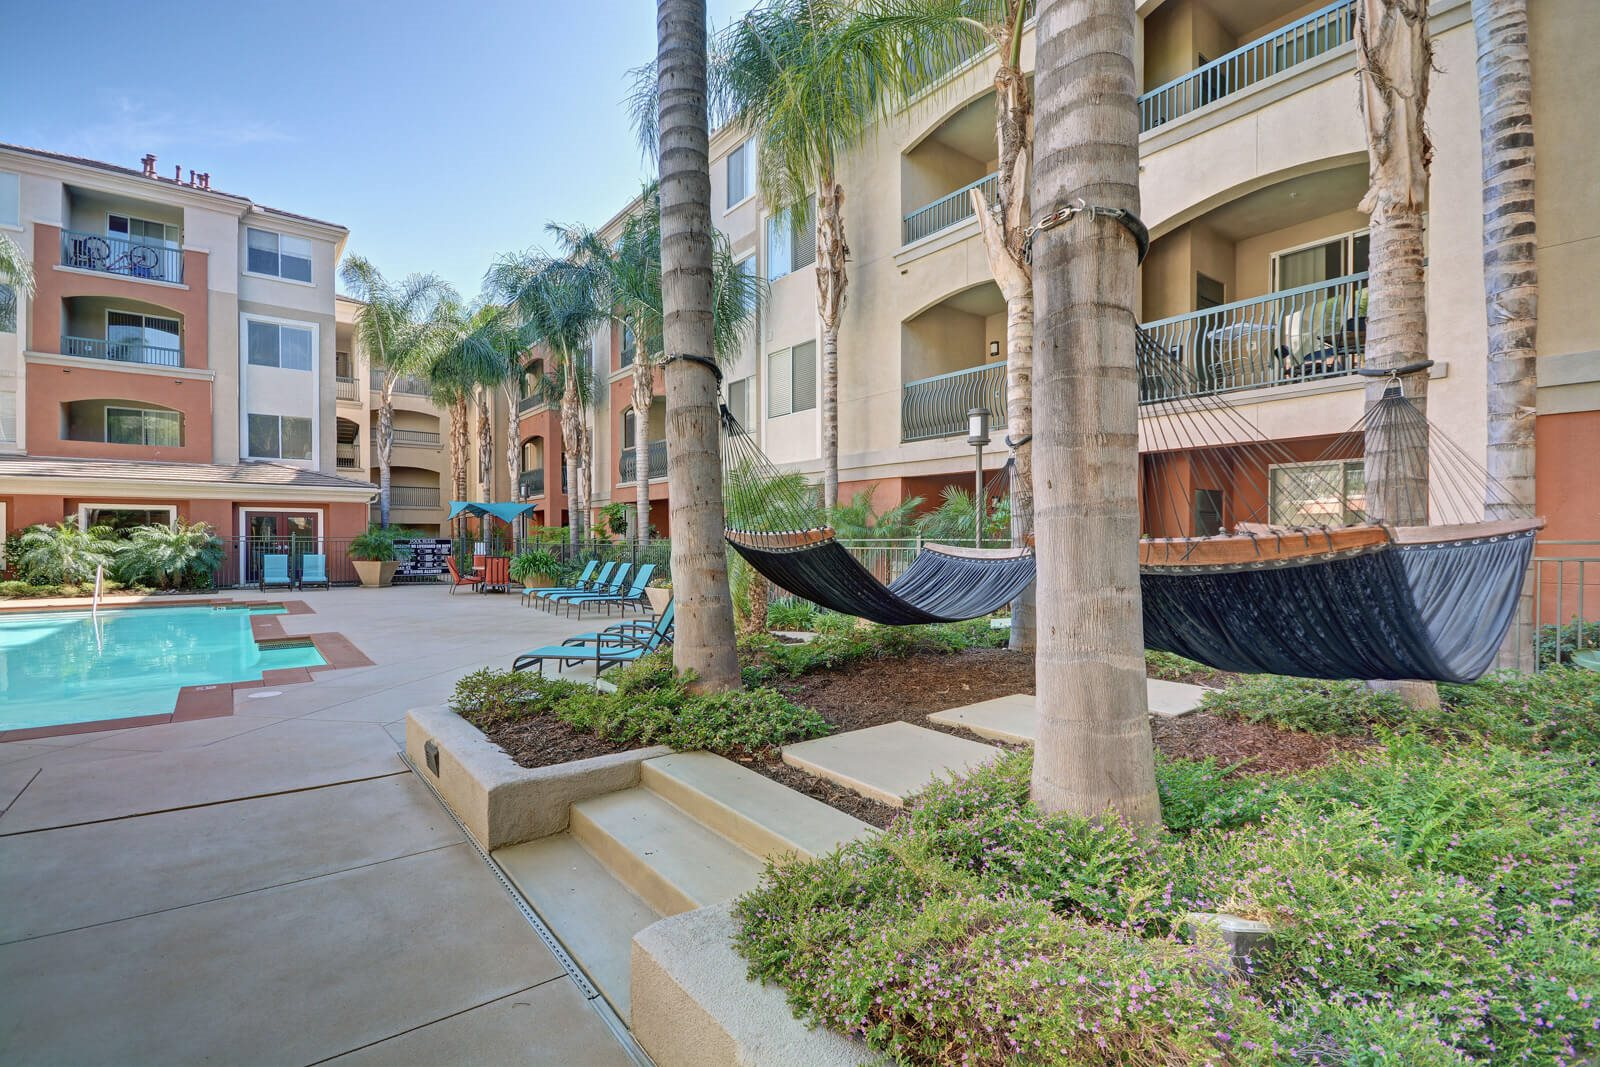 Pool Deck with Lounge Chairs and Hammocks at Windsor at Main Place, Orange, California